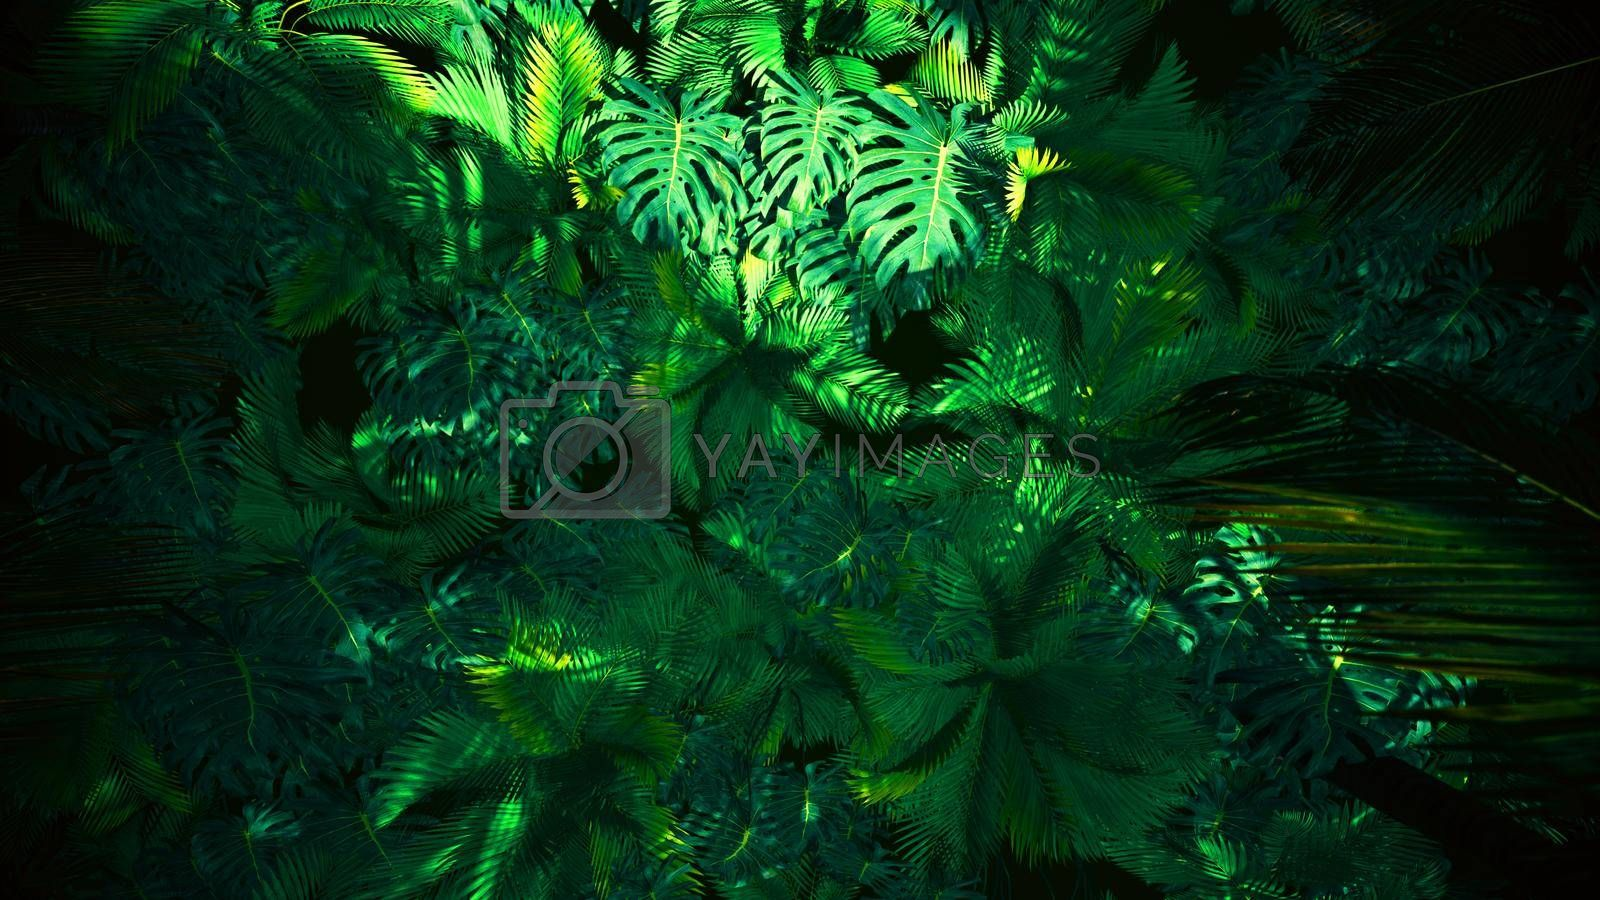 3D illustration Background for advertising and wallpaper in nature and advertising scene. 3D rendering in decorative concept